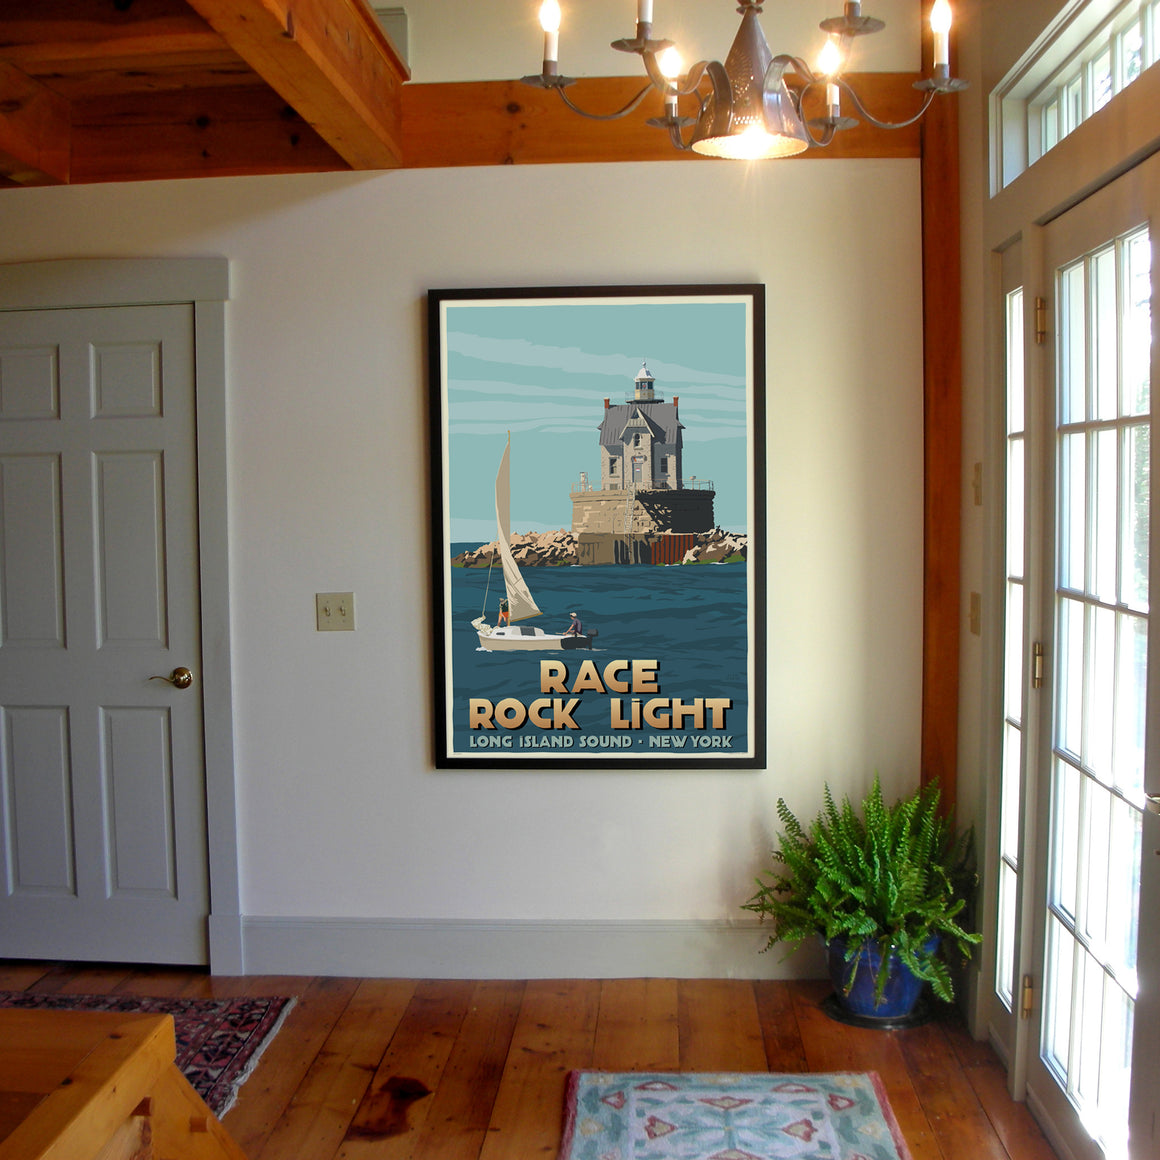 "Race Rock Light Art Print 36"" x 53"" Framed Travel Poster - New York"